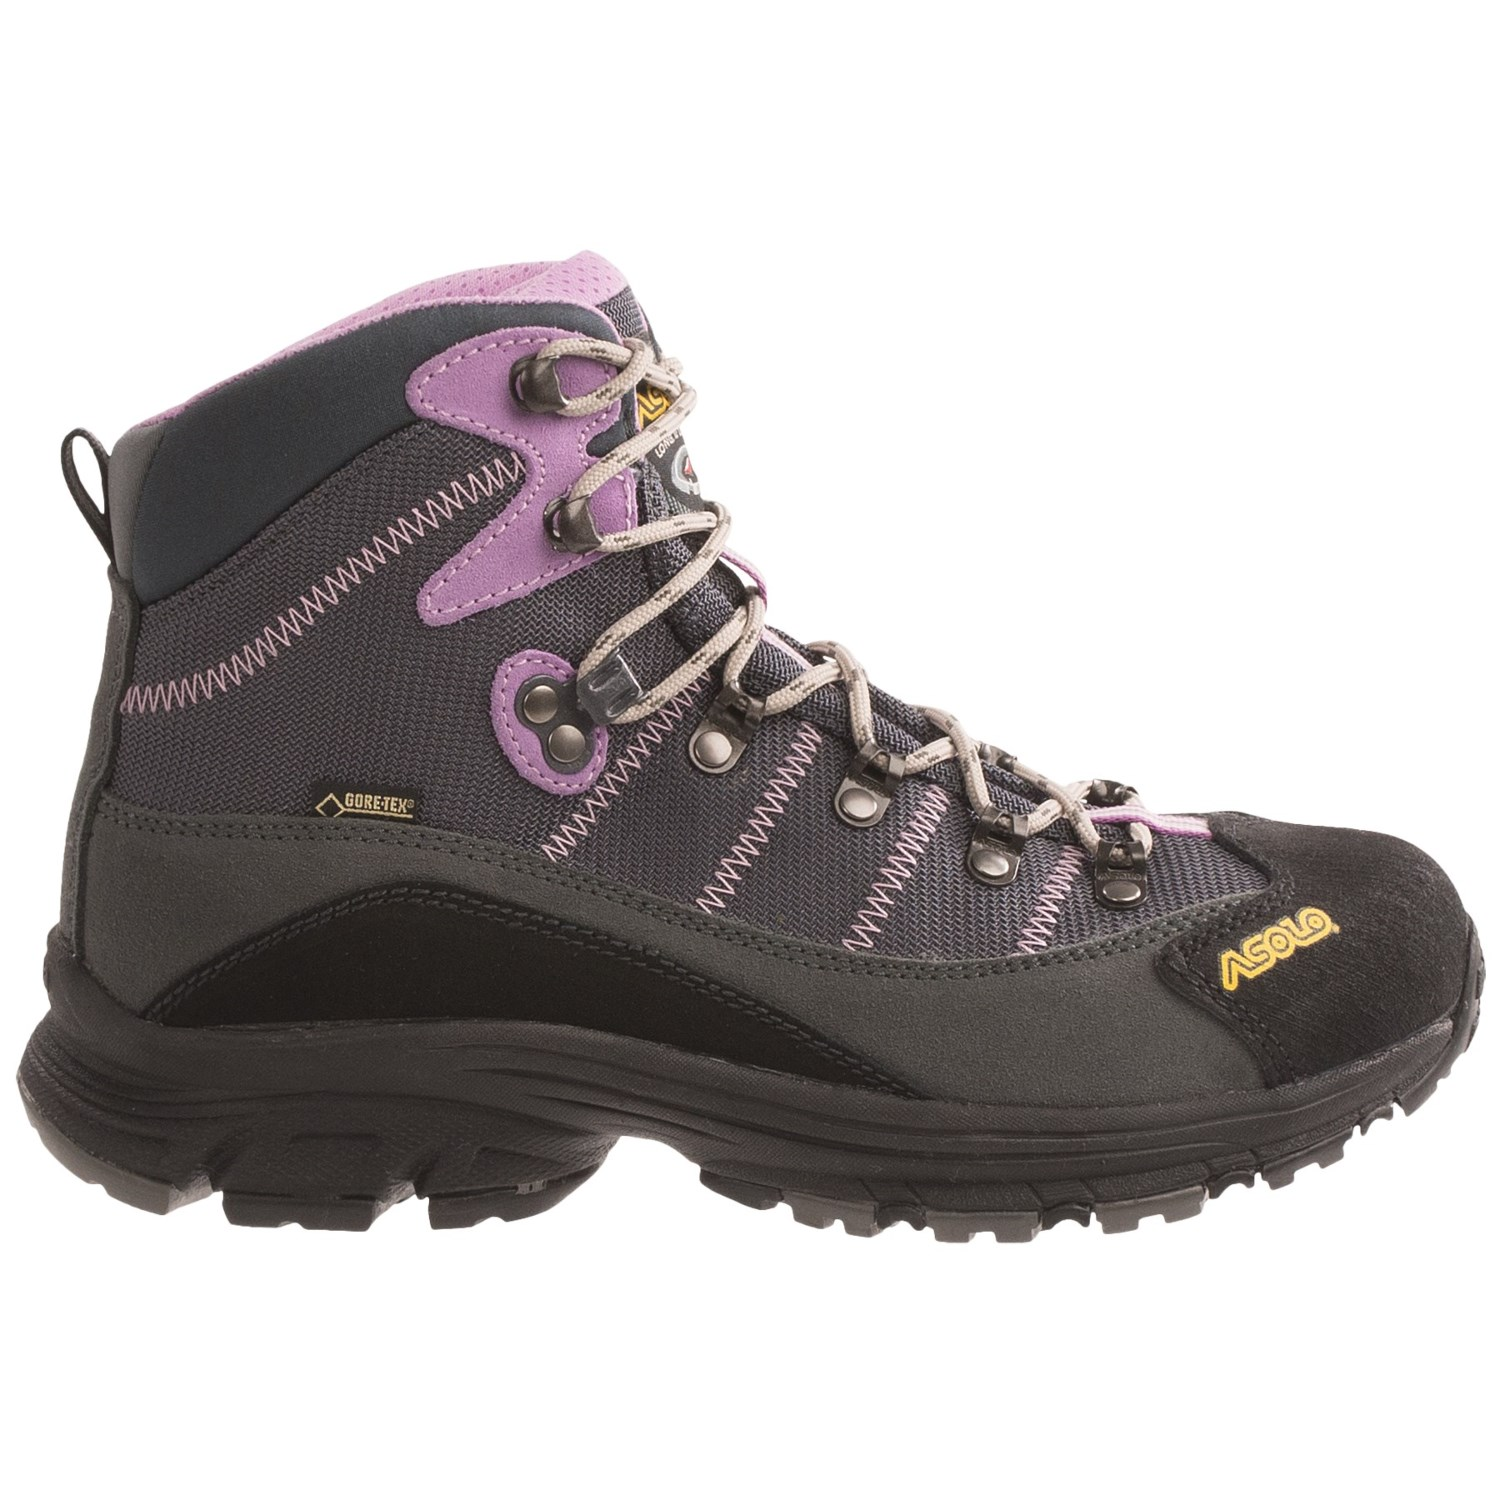 Asolo Horizon 1 Gore Tex 174 Hiking Boots For Women Save 39